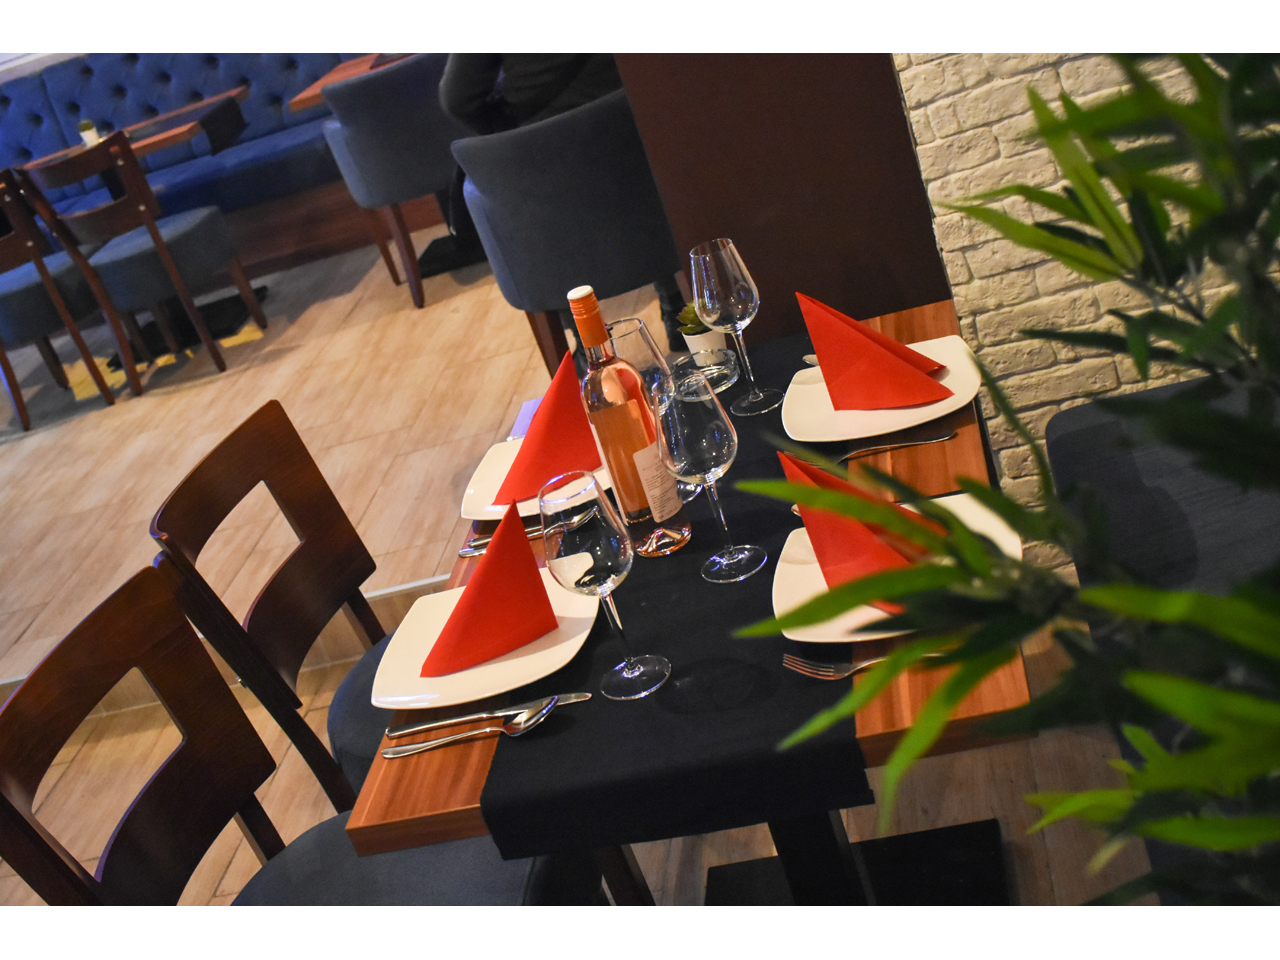 RESTAURANT STARI RAS Spaces for celebrations, parties, birthdays Beograd